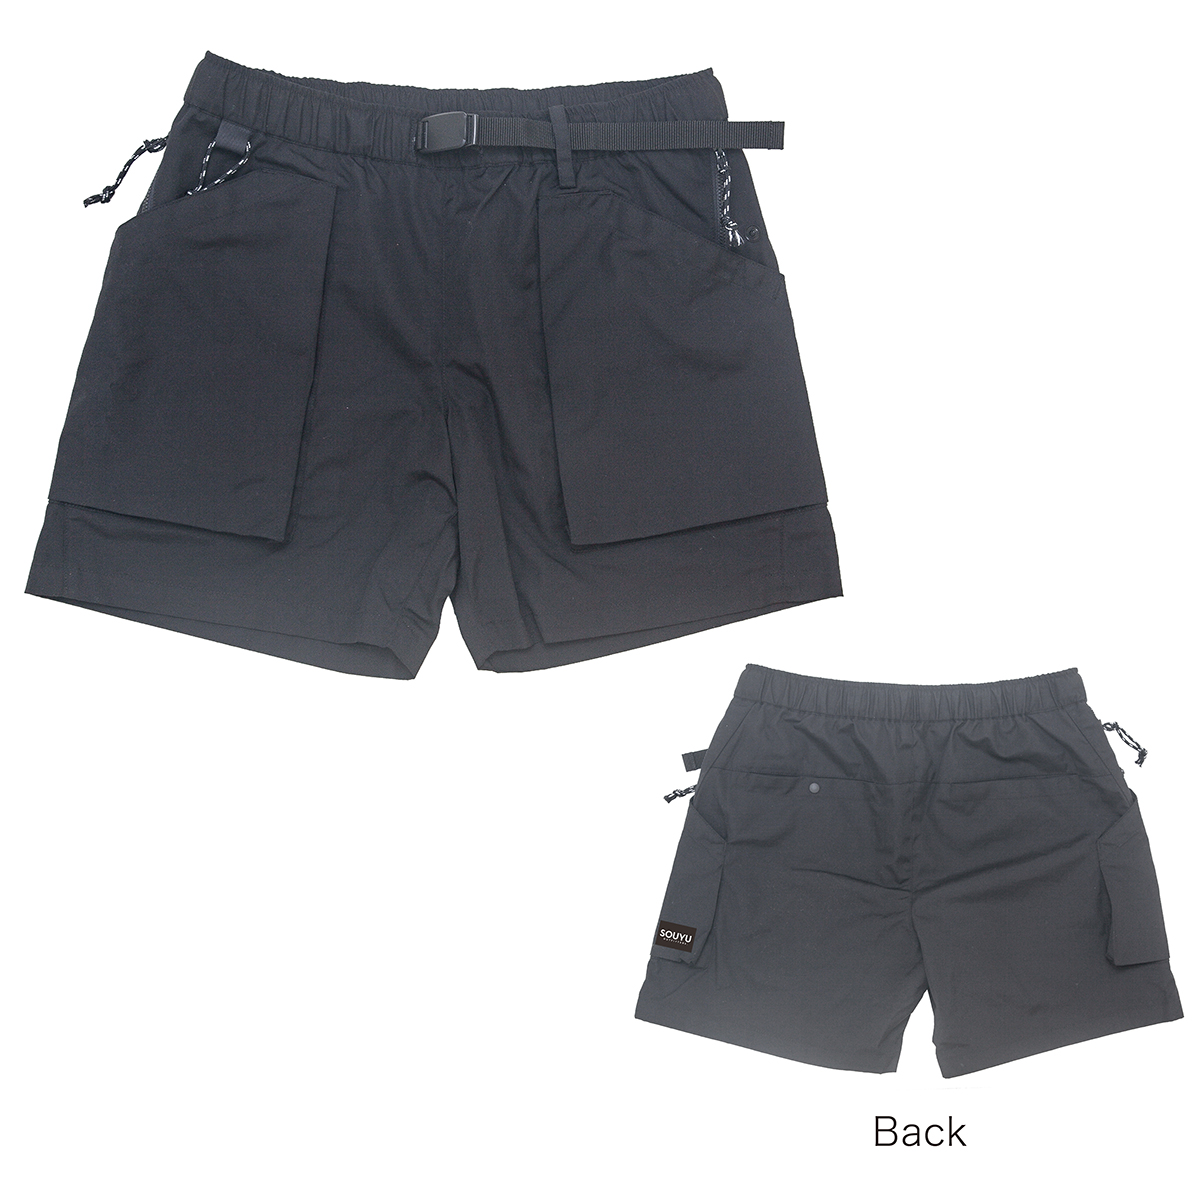 PLAYERS SHORT プレイヤーズショーツ Number : s20-so-02 Fabric : Polyester 65% Cotton 35% Size : S, M, L, XL Color:Black Price : ¥12,800